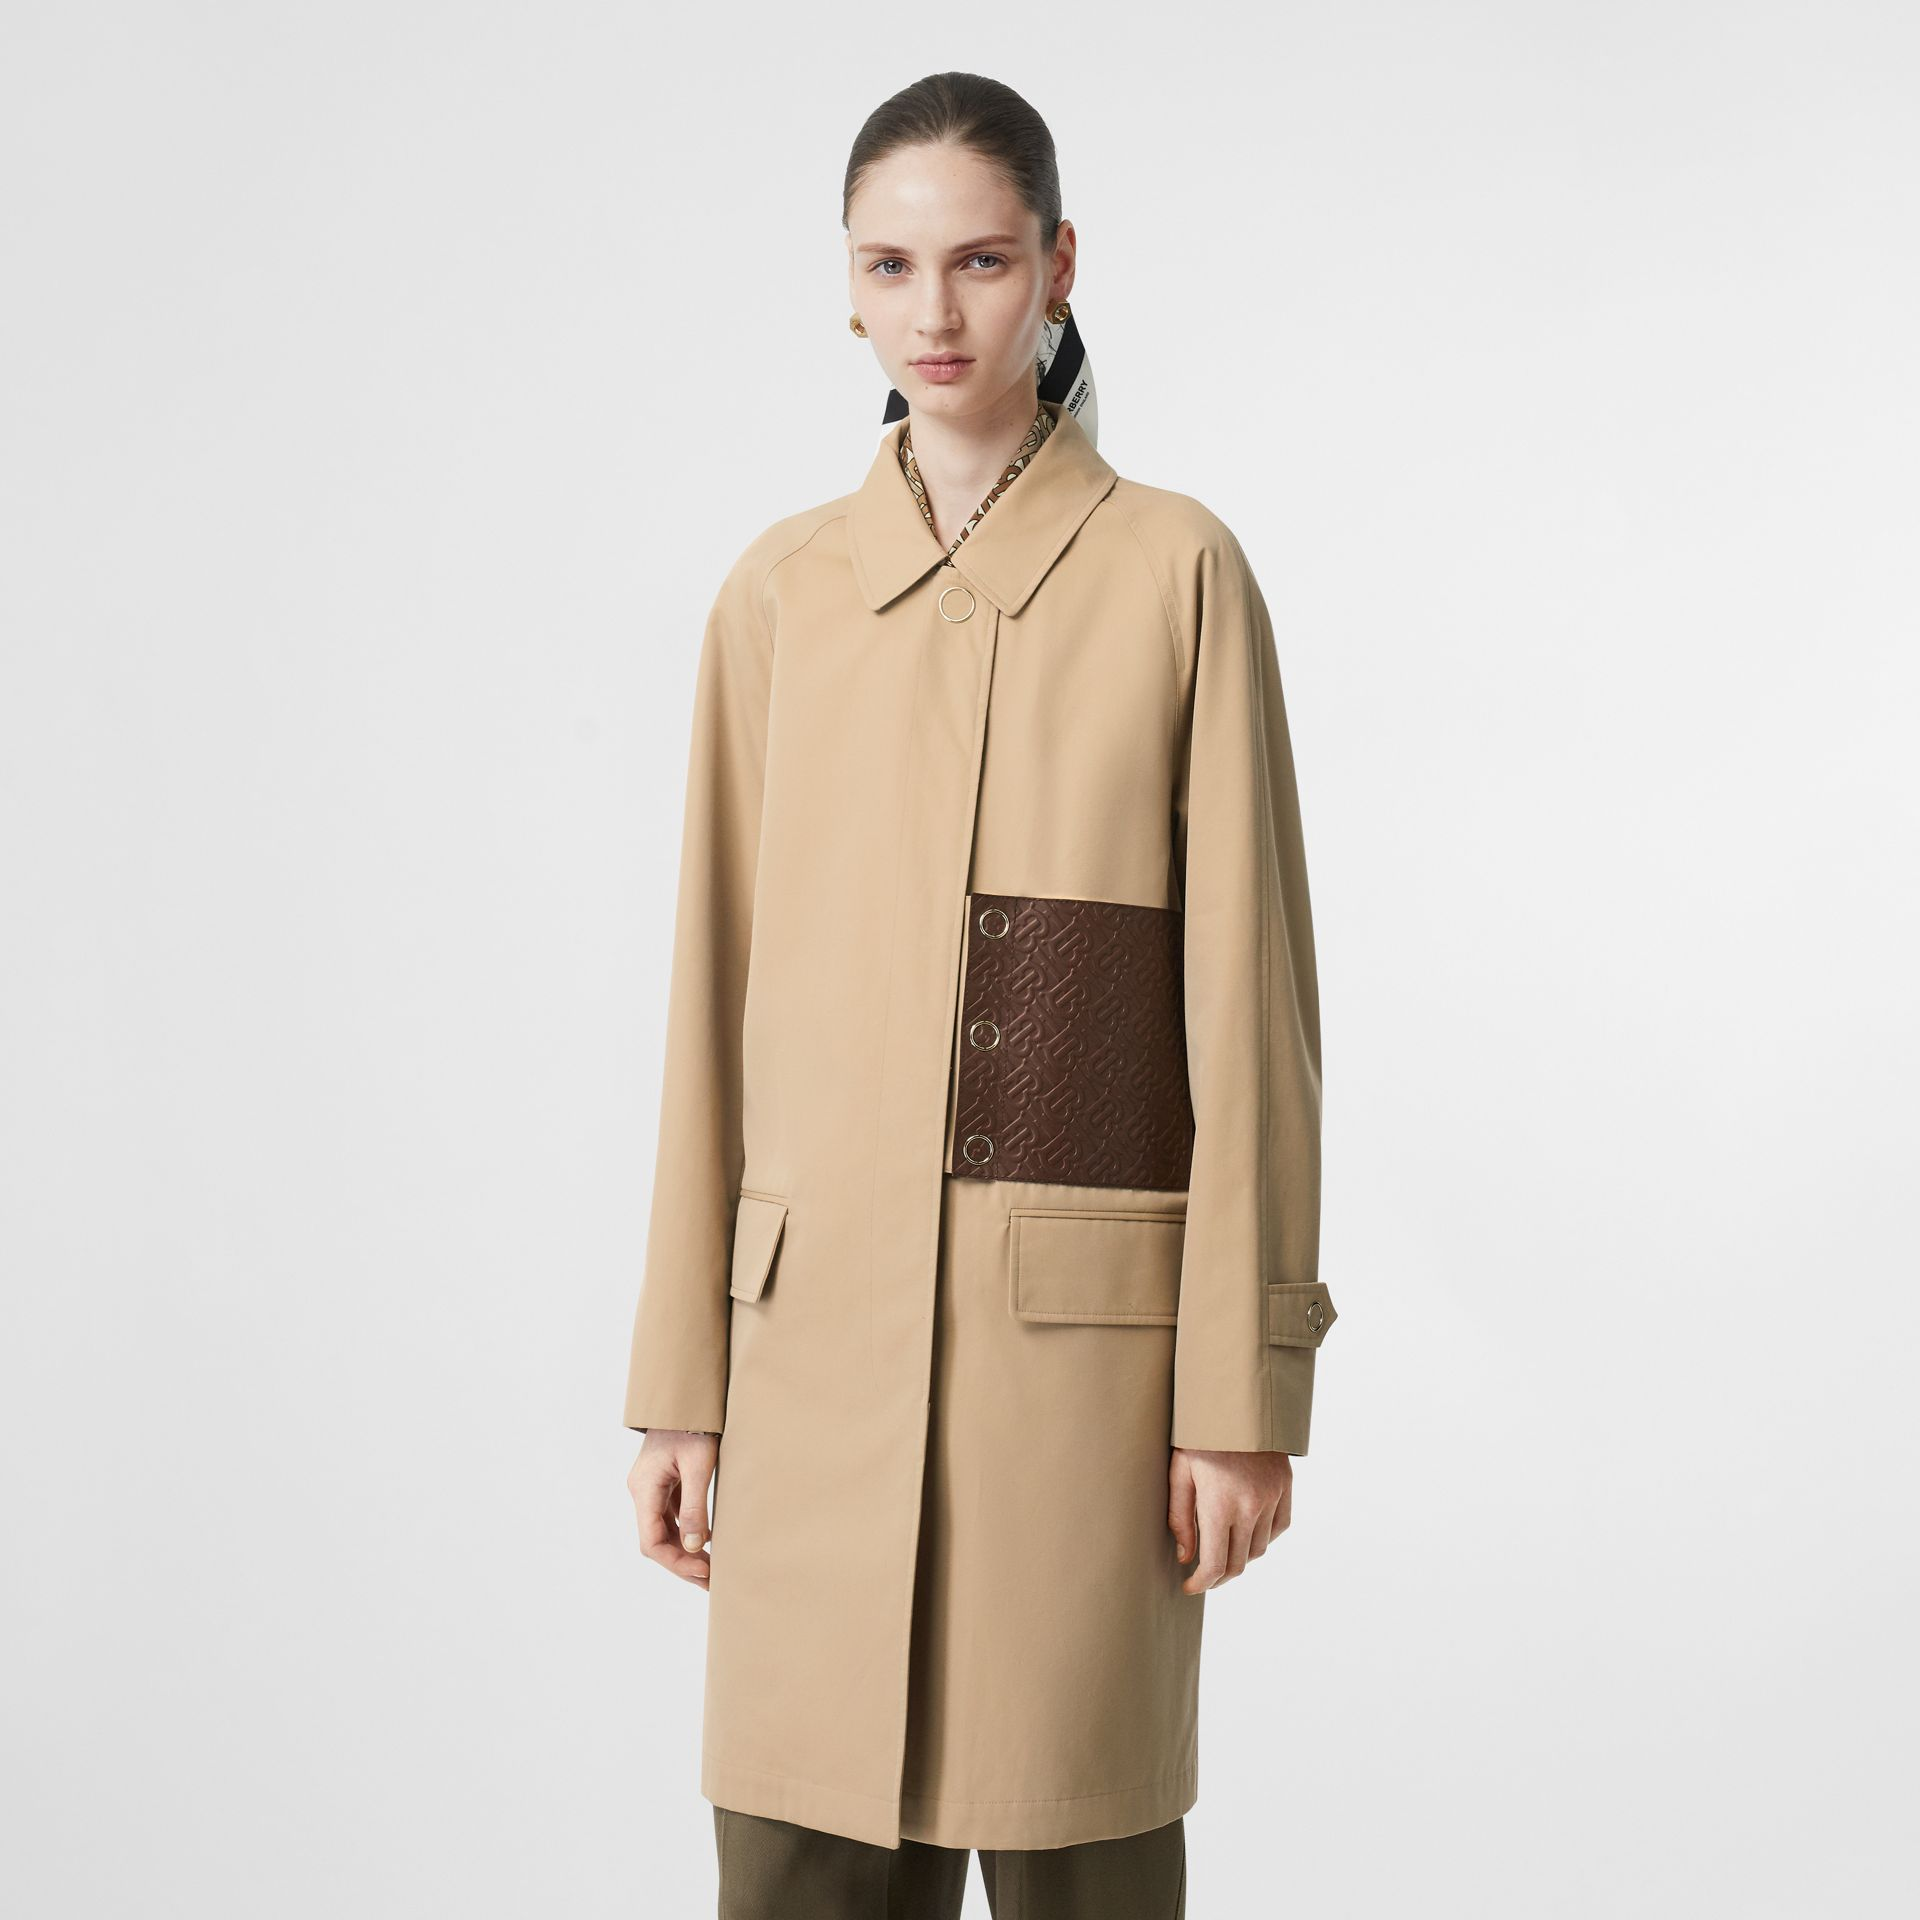 Monogram Leather Detail Cotton Gabardine Car Coat in Honey - Women | Burberry - gallery image 5